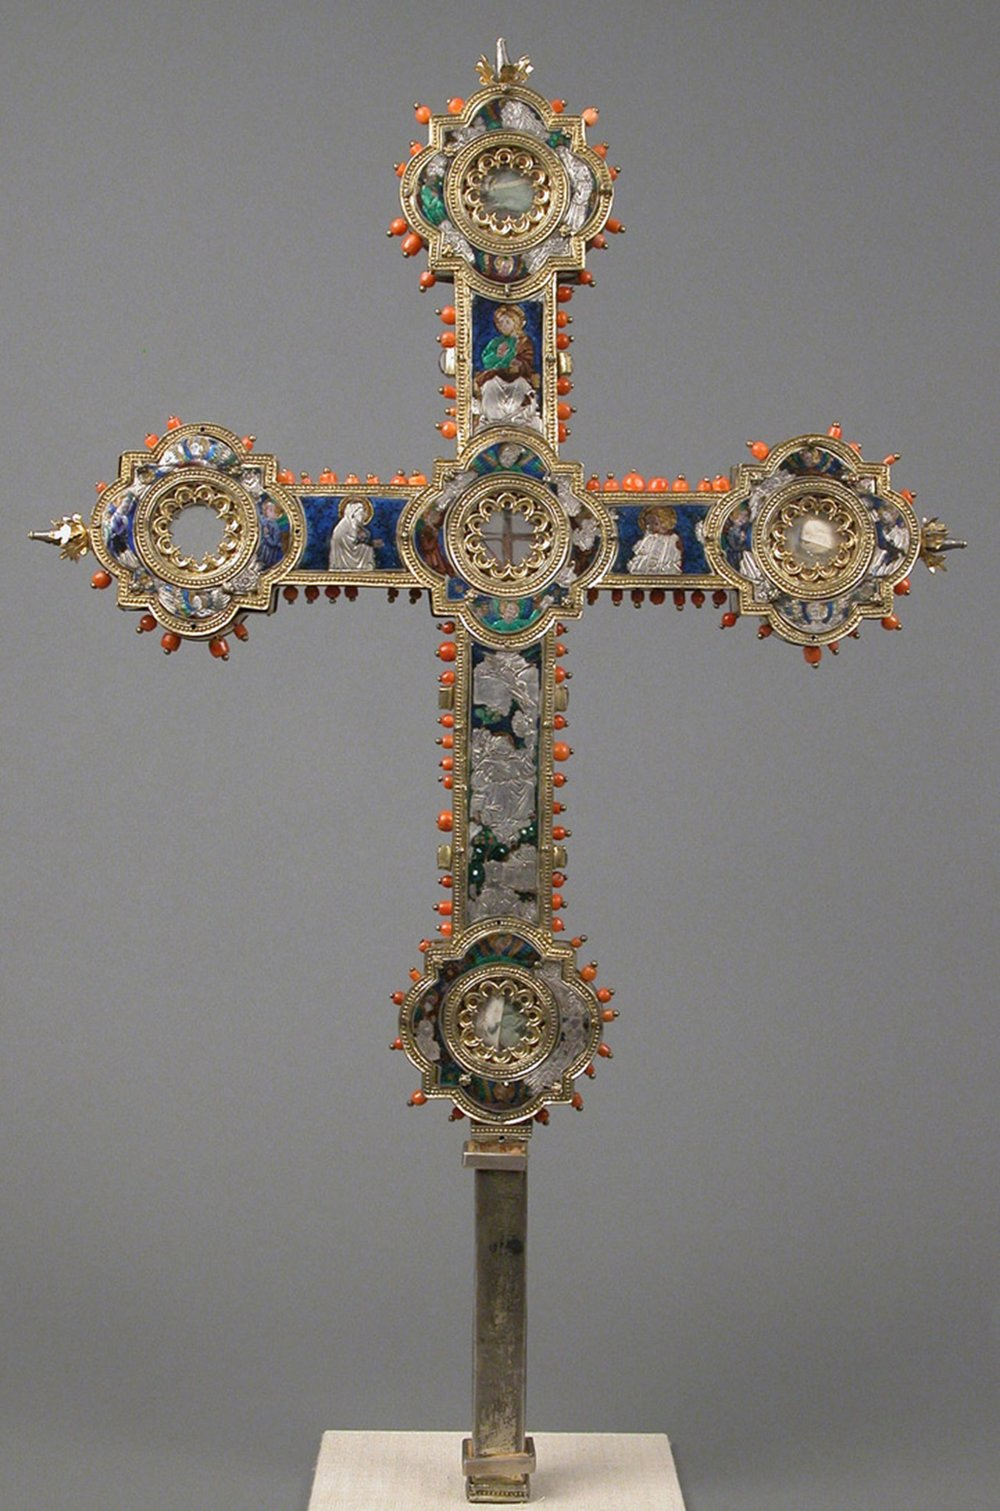 Reliquary cross, 14th century. Italian. Enamel, silver-gilt, coral, glass, rock-crystal, gold leaf. The Metropolitan Museum of Art, Gift of J. Pierpoint Morgan, 1917 (17.190.497)